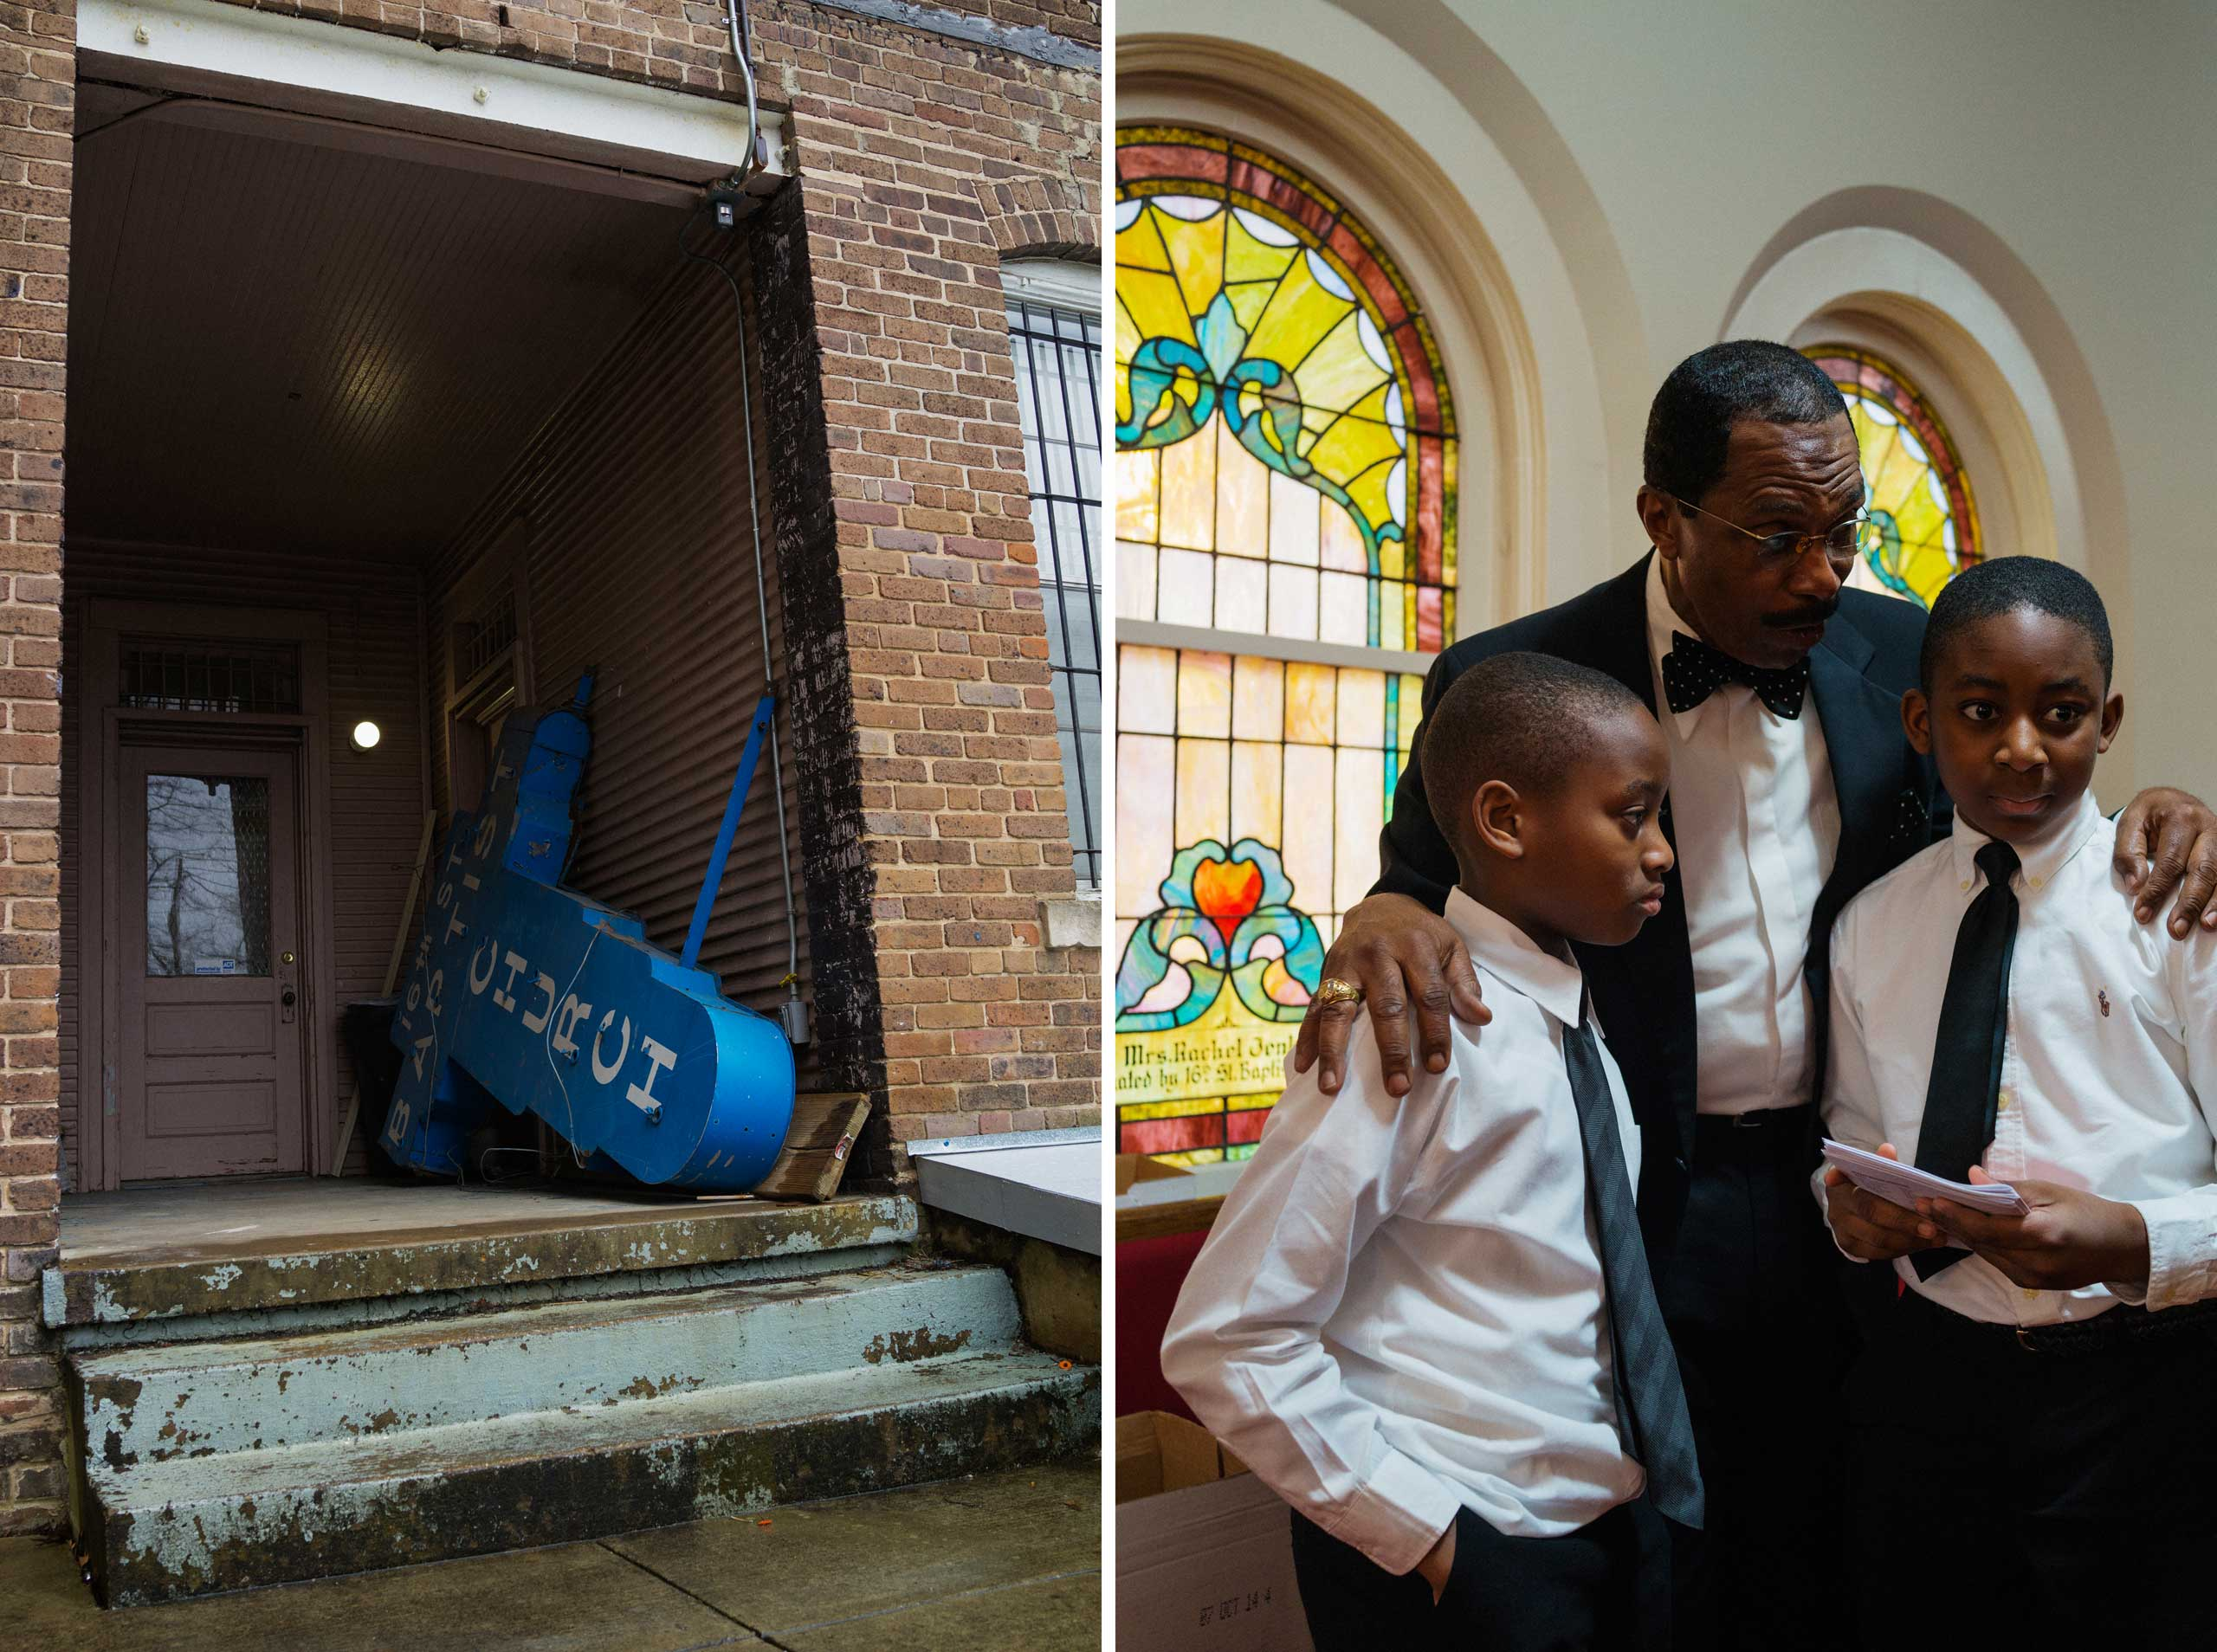 "Left: The old sign from 16th Street Baptist Church in Birmingham, Ala. Right: A deacon gives instructions to two young greeters at 16th Street Baptist Church in Birmingham, Ala. on March 22, 2015.                                                                                                                                            The church, an icon of the Civil Rights movement,  is struggling to keep up attendance. Pastor Arthur Price says he tries to relate the deadly 1963 bombing at the church by white supremacists and the current mission. ""Because of the tragedy, triumph took place—the '64 passage of the Civil Rights Act and the '65 passage of the Voting Rights Act, which galvanized a generation and motivated a movement so change would be continuous throughout the ages,"" he says. ""I believe the early pioneers of the Civil Rights movement continued to move forward because they didn't want that innocent blood to be taken in vain."""